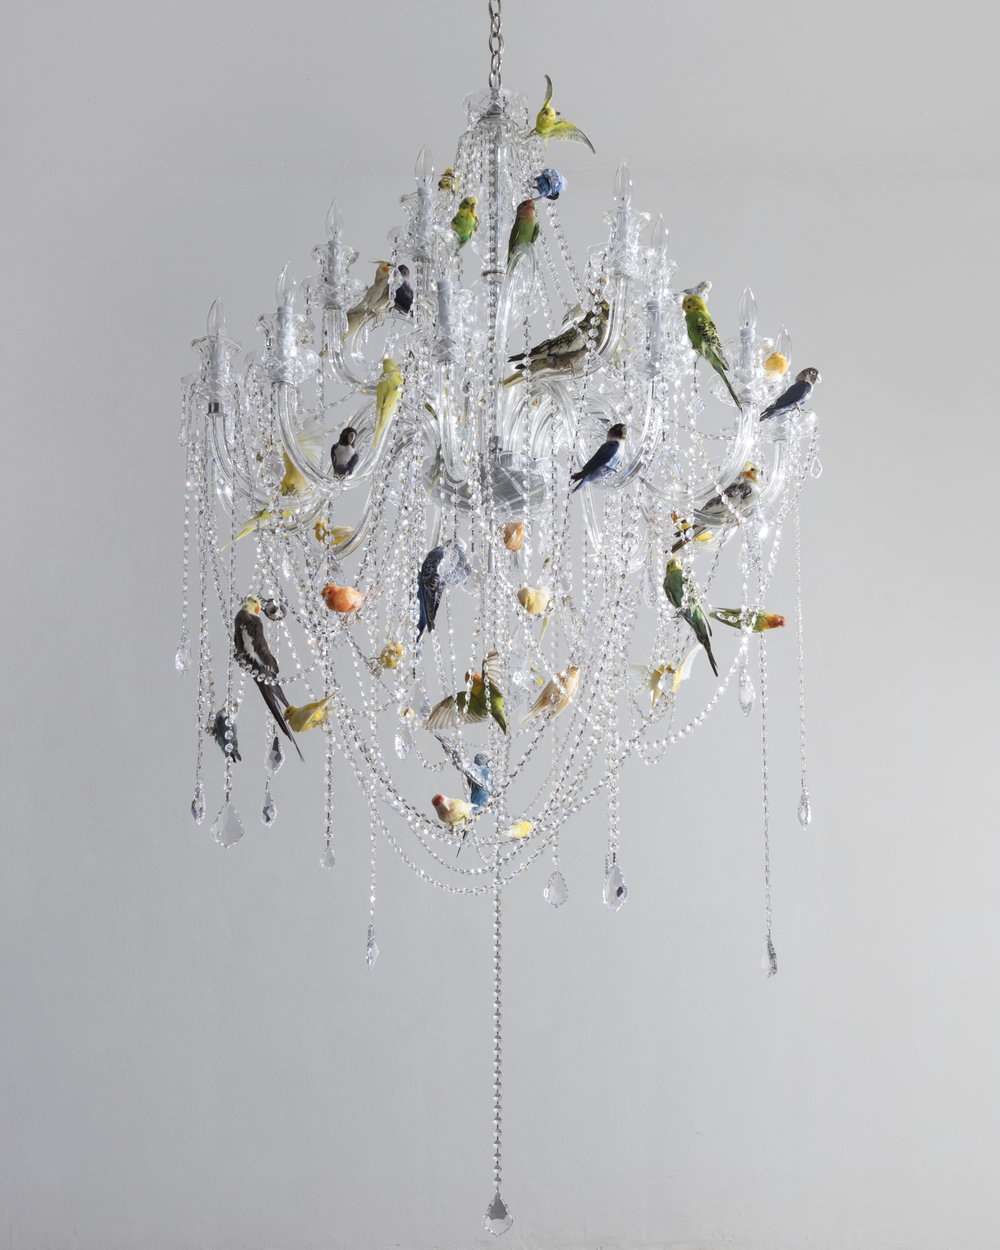 2018  Crystal chandelier and taxidermy birds  h.70 in (177.8 cm)  diam. 40  in (101.6 cm)  Sebastian ErraZuriz's new Bird Chandelier presents a traditional crystal lamp covered with taxidermy birds. The 50 birds attempt to balance the presence of the shiny crystals with their multicolored feathers. Almost as fragile and delicate as the glass pieces themselves the birds are immortalized as decoration offering a cold and eerie beauty. The Bird Chandelier was inspired by a similar lamp at Sebastian's grandmother's house which would occasionally have birds fly in through the windows, perch on the lamp and at times unfortunately be injured or die when trying to fly out through a different closed window.